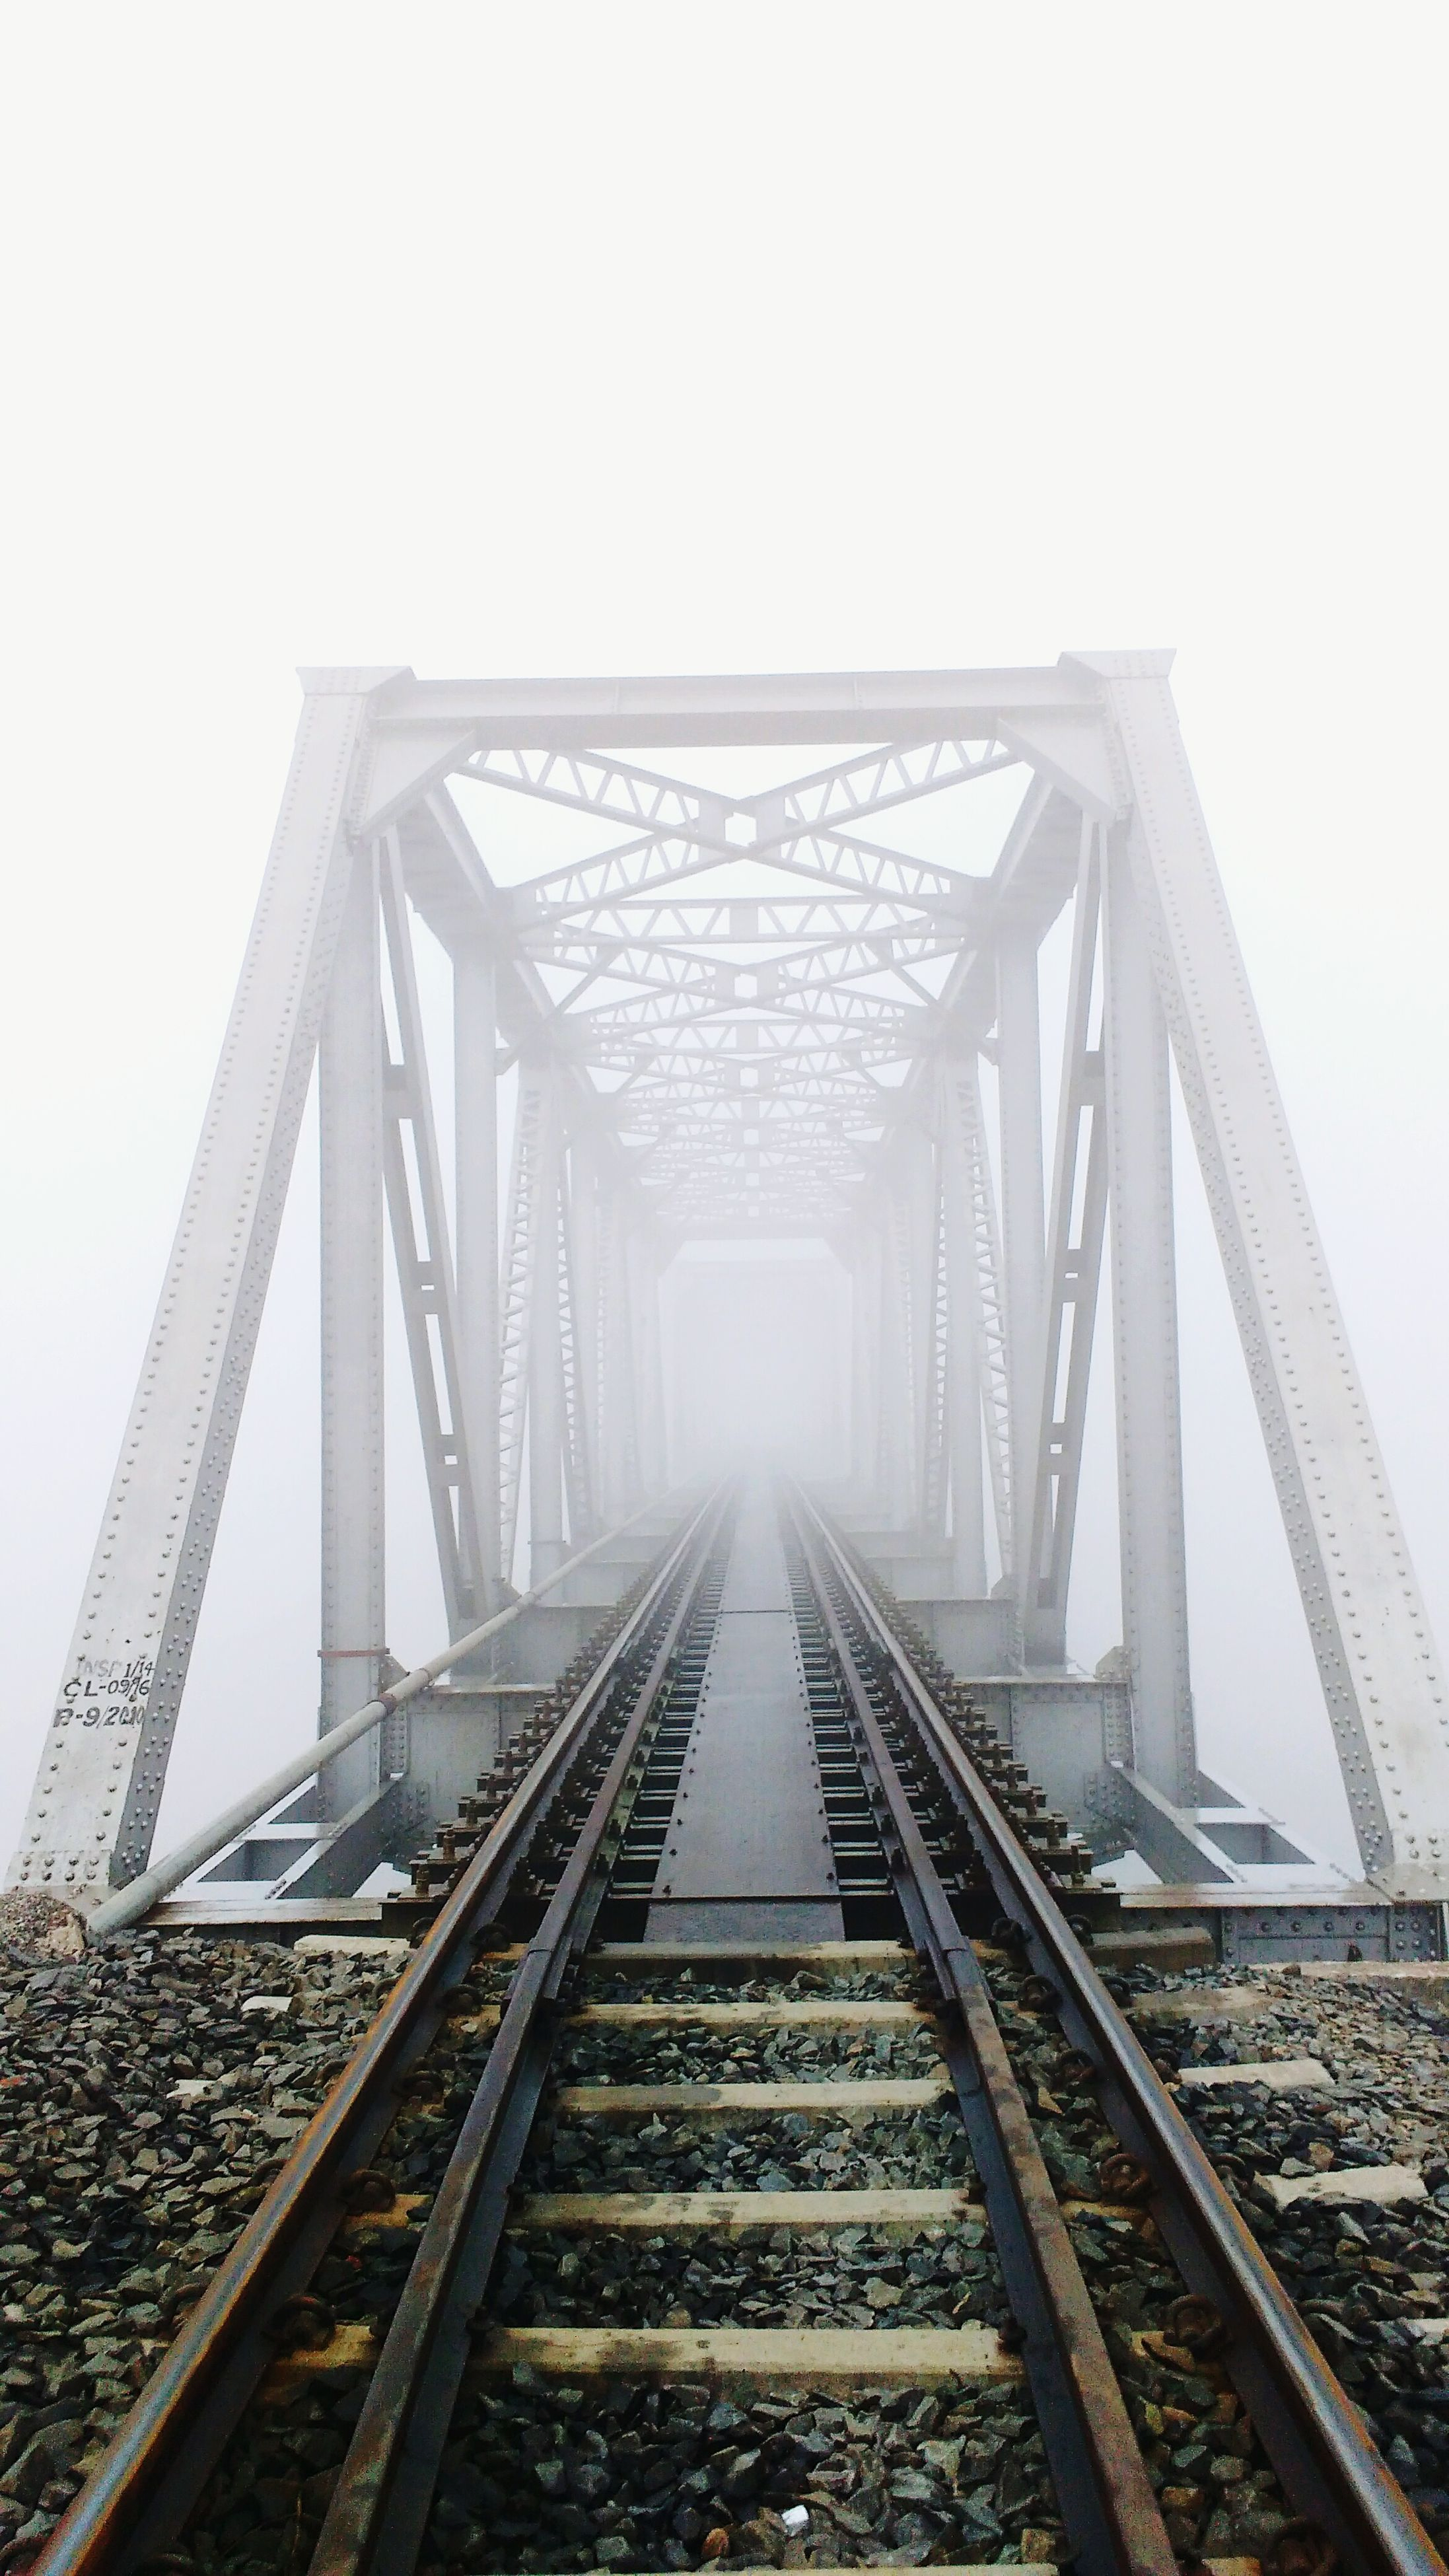 bridge - man made structure, fog, outdoors, sky, connection, the way forward, architecture, no people, day